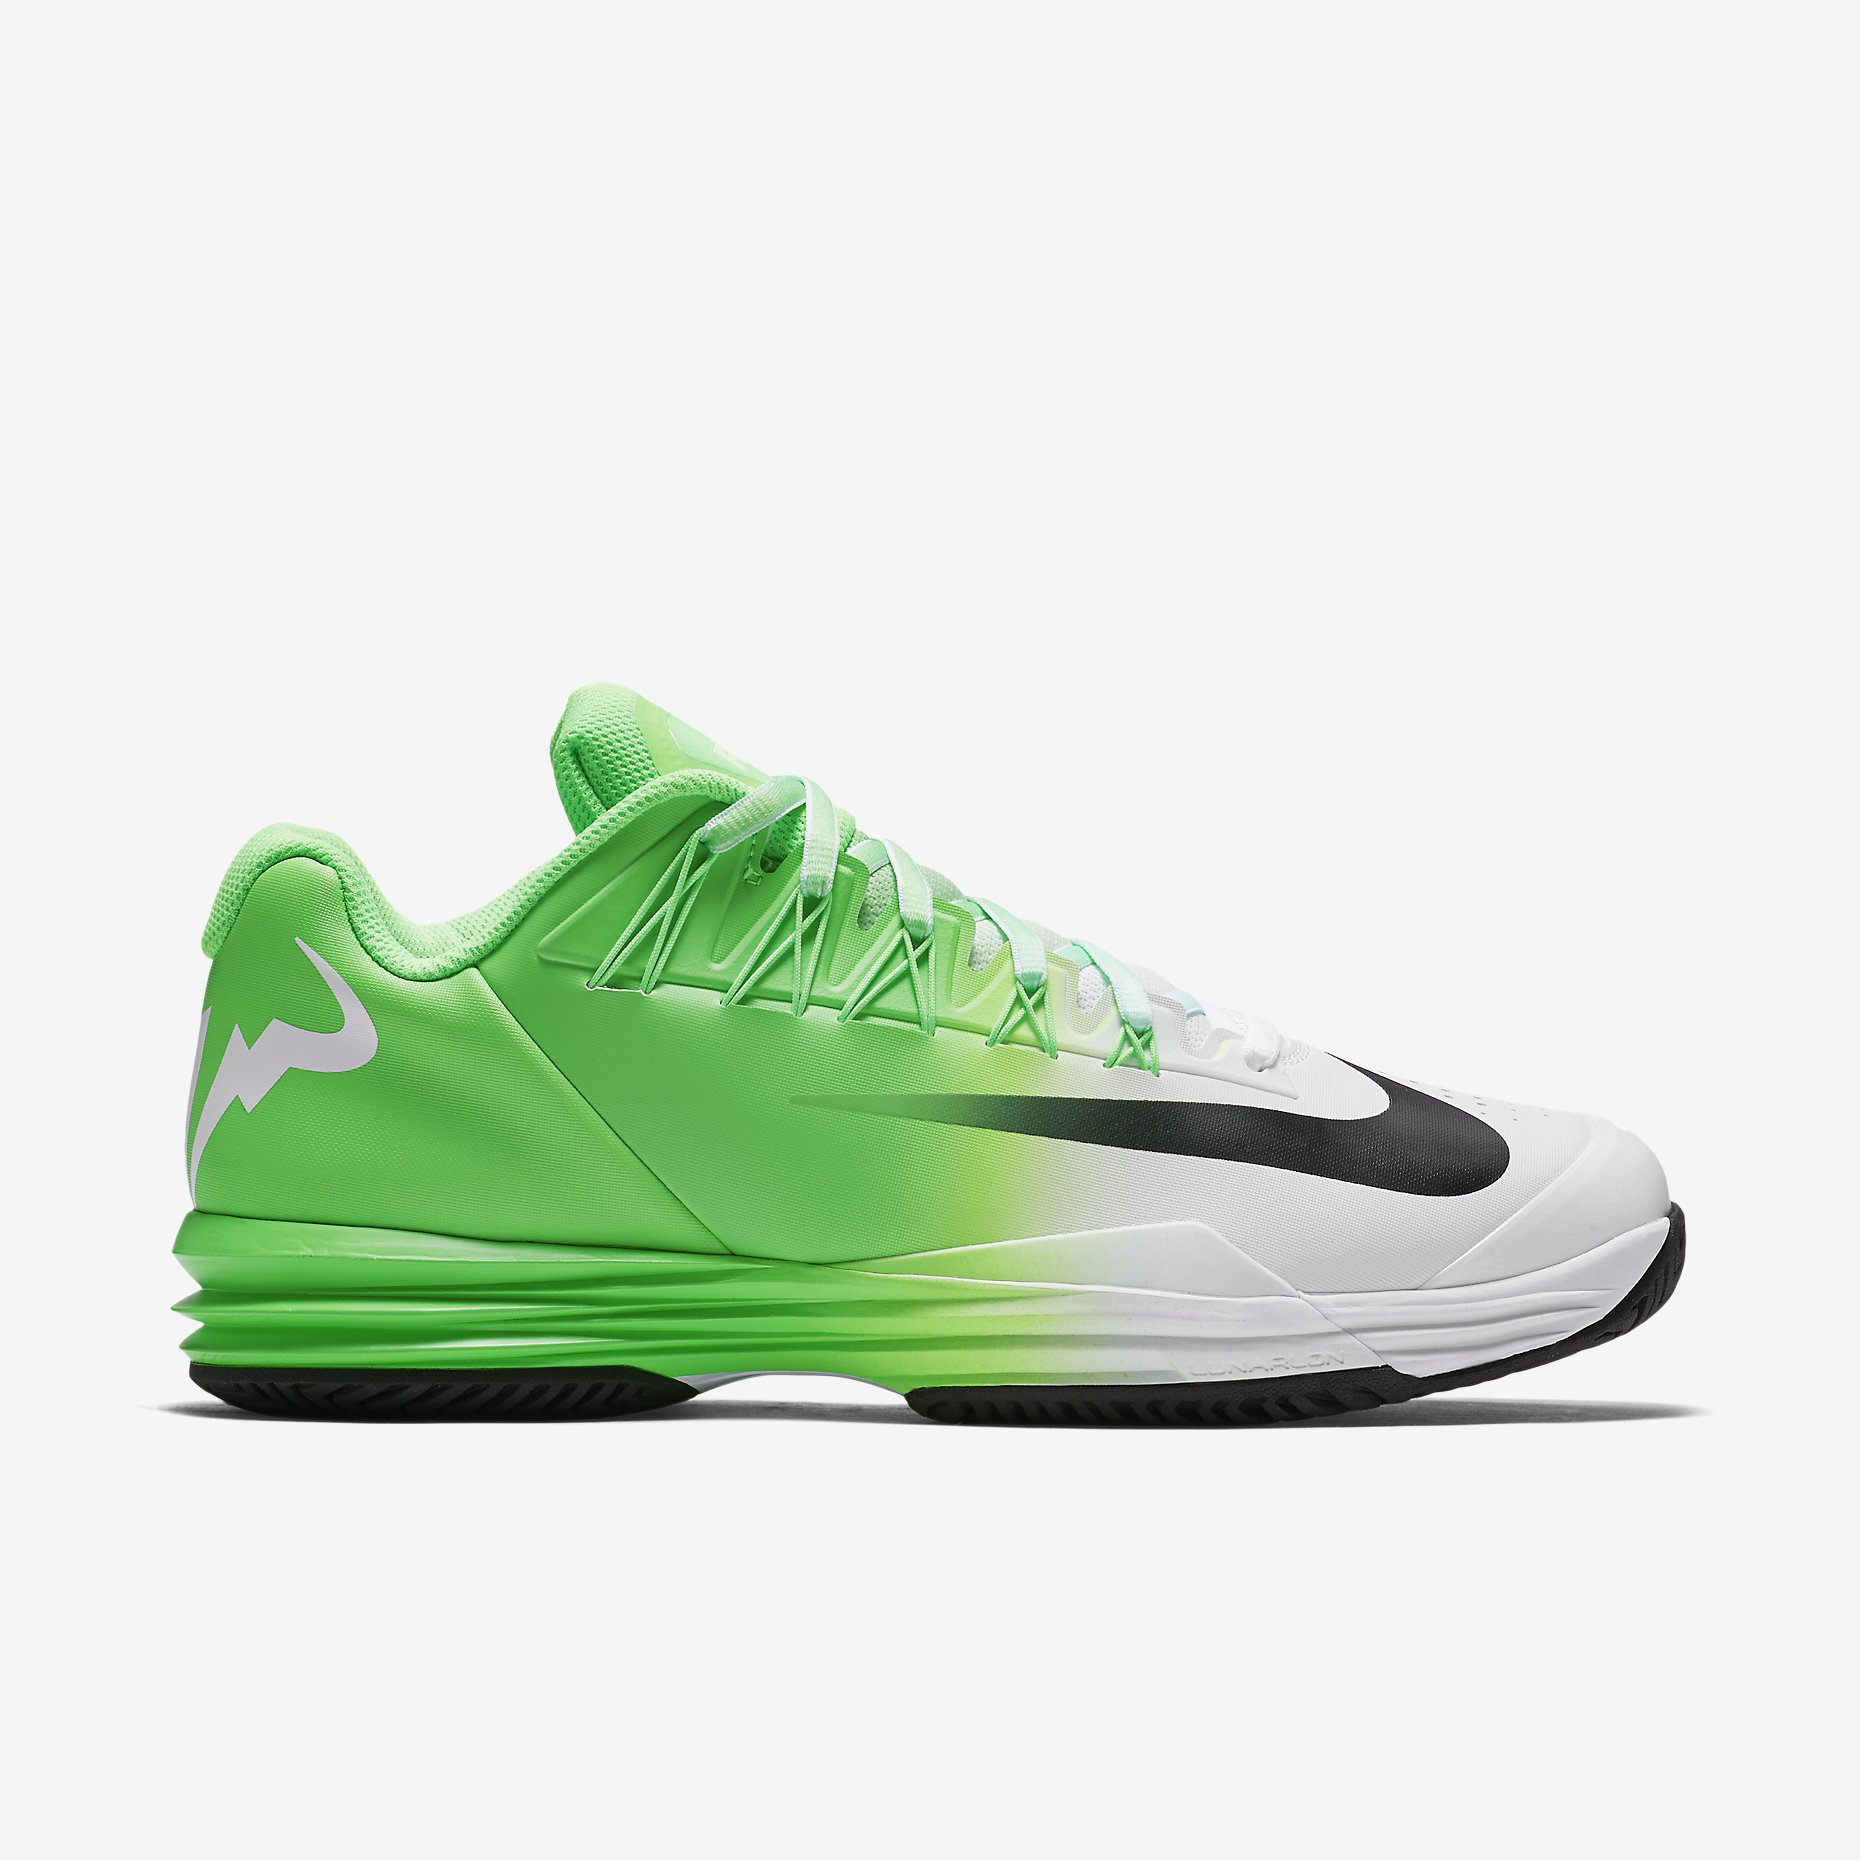 Simple Seventeen Times Grand Slam Champion Roger Federer Wears Custom Nike Tennis Shoes During First ...